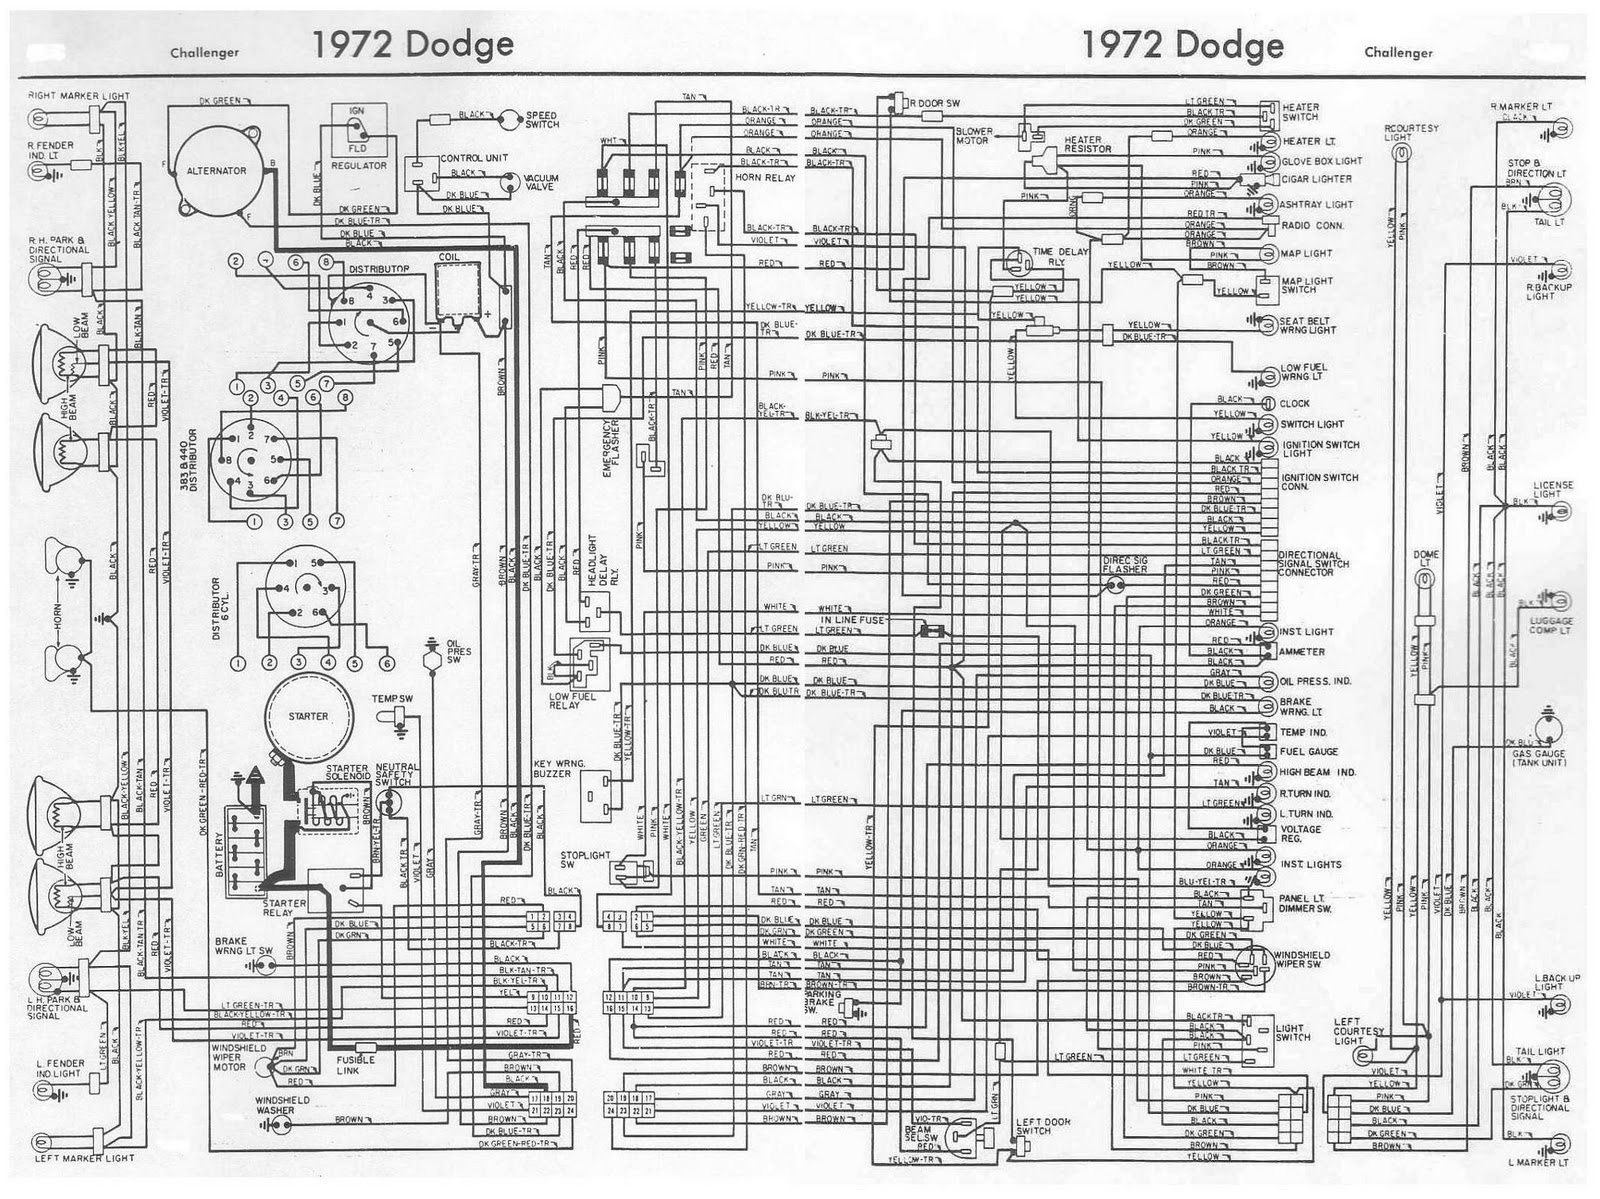 light wiring diagram 2 way switch 2001 ford f350 fuse dodge challenger 1972 complete | all about diagrams